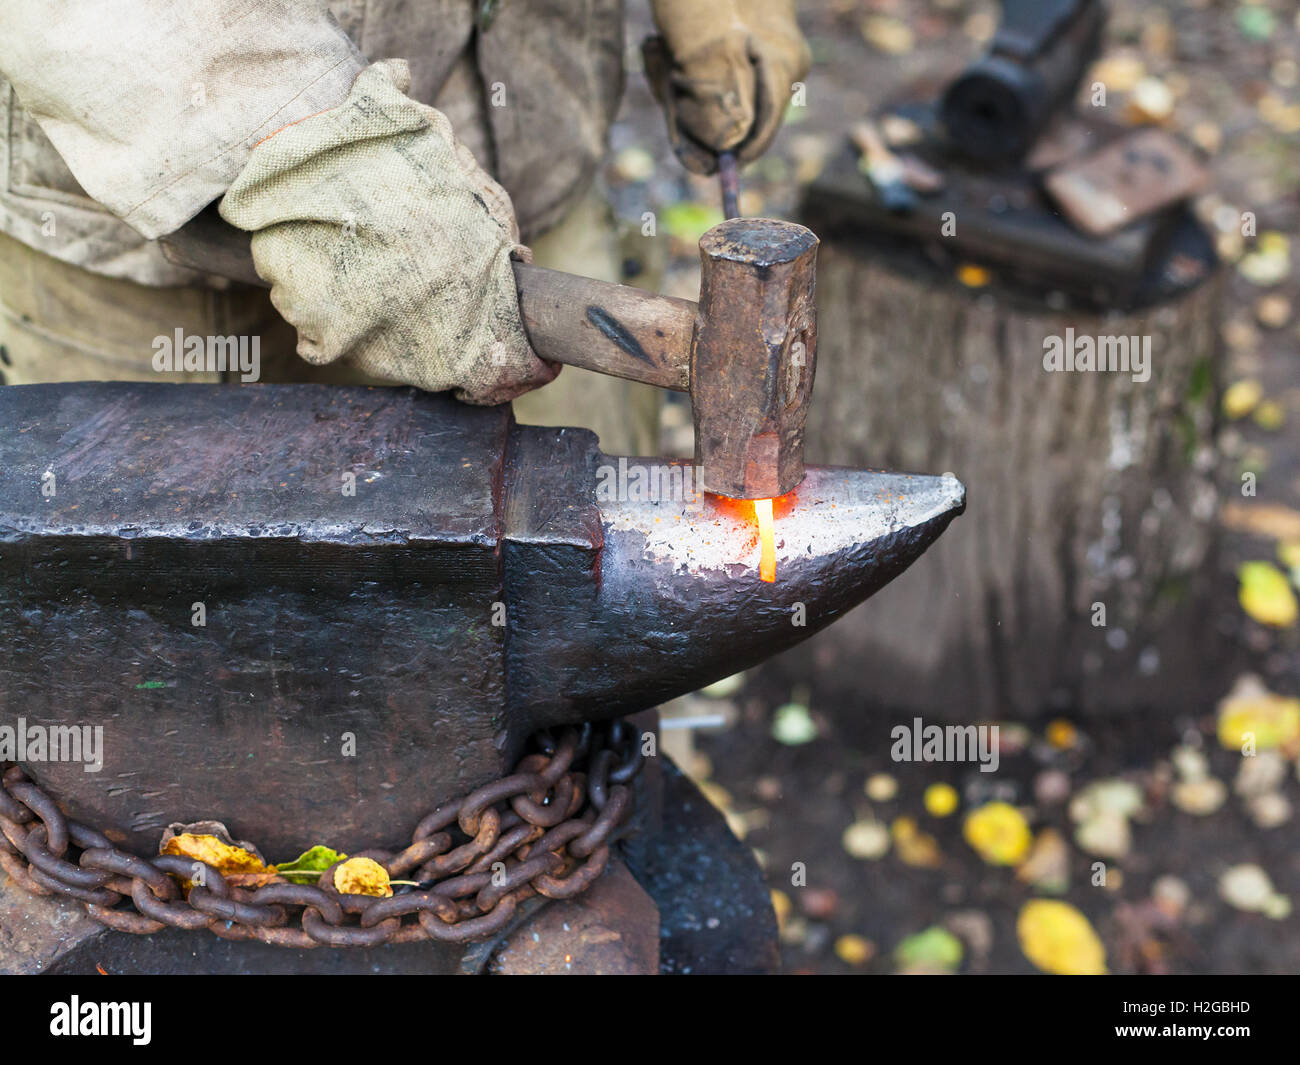 Blacksmith processing red hot iron rod on anvil in outdoor ...